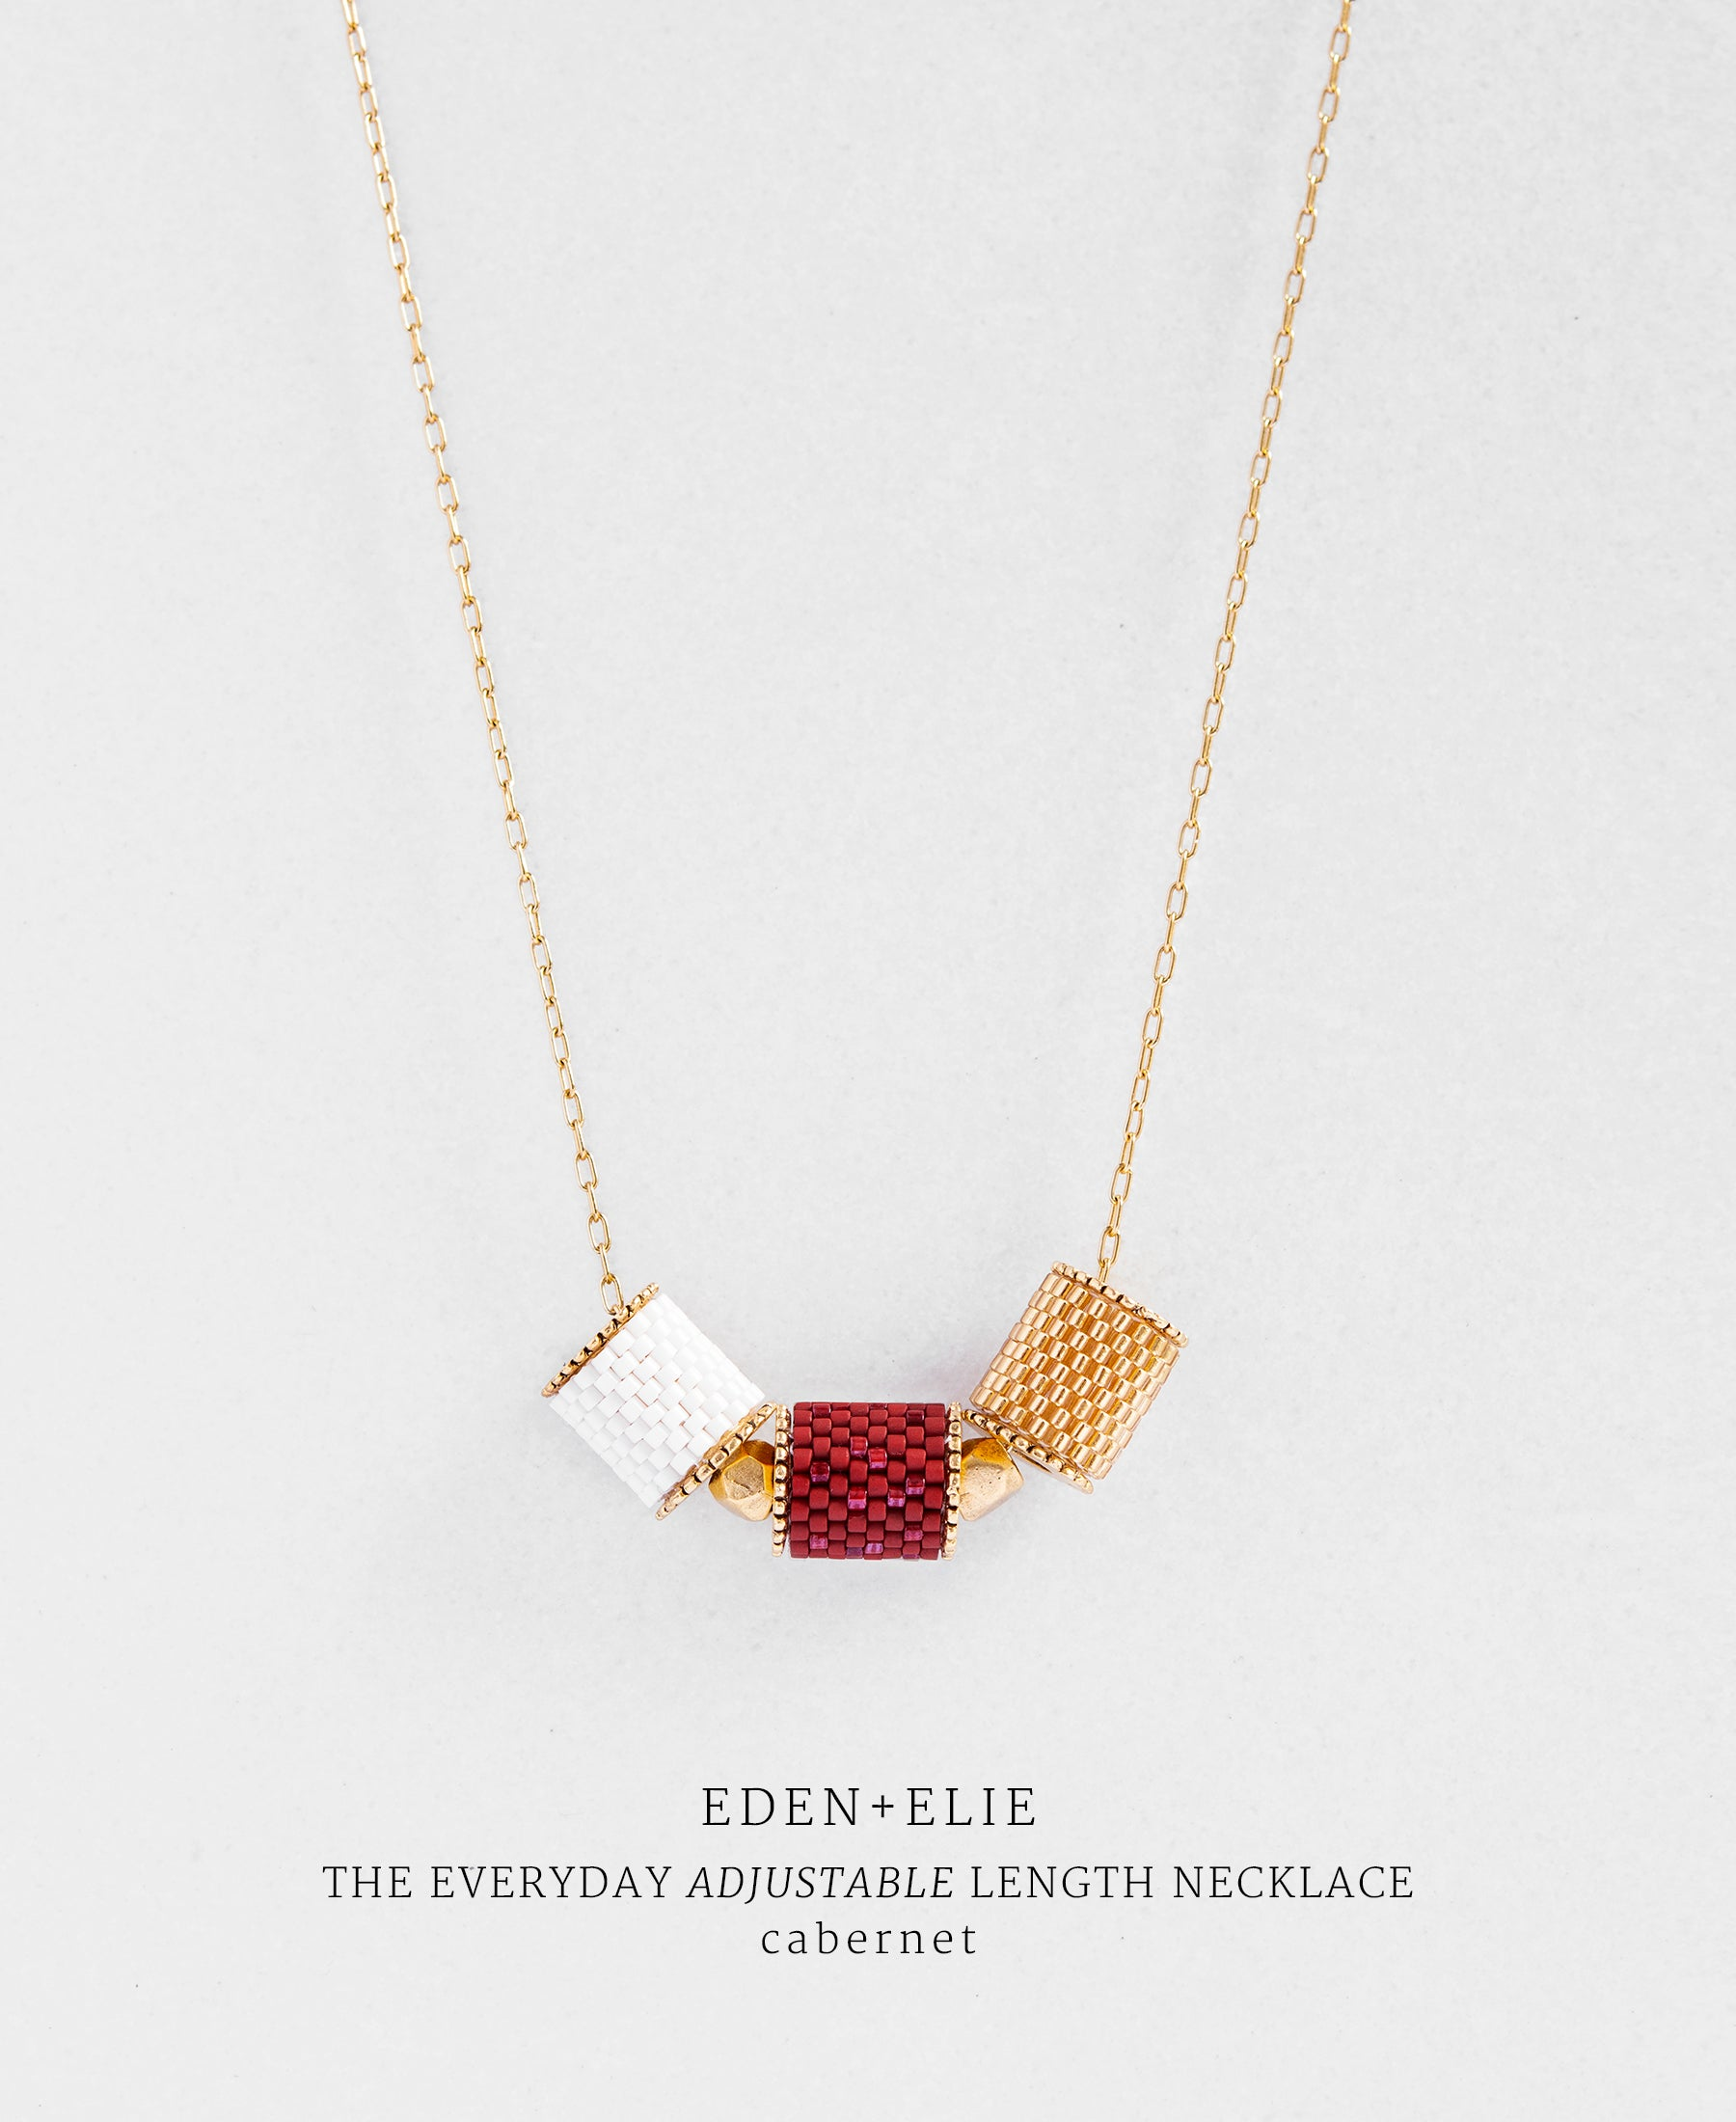 EDEN + ELIE Everyday adjustable length necklace - cabernet red